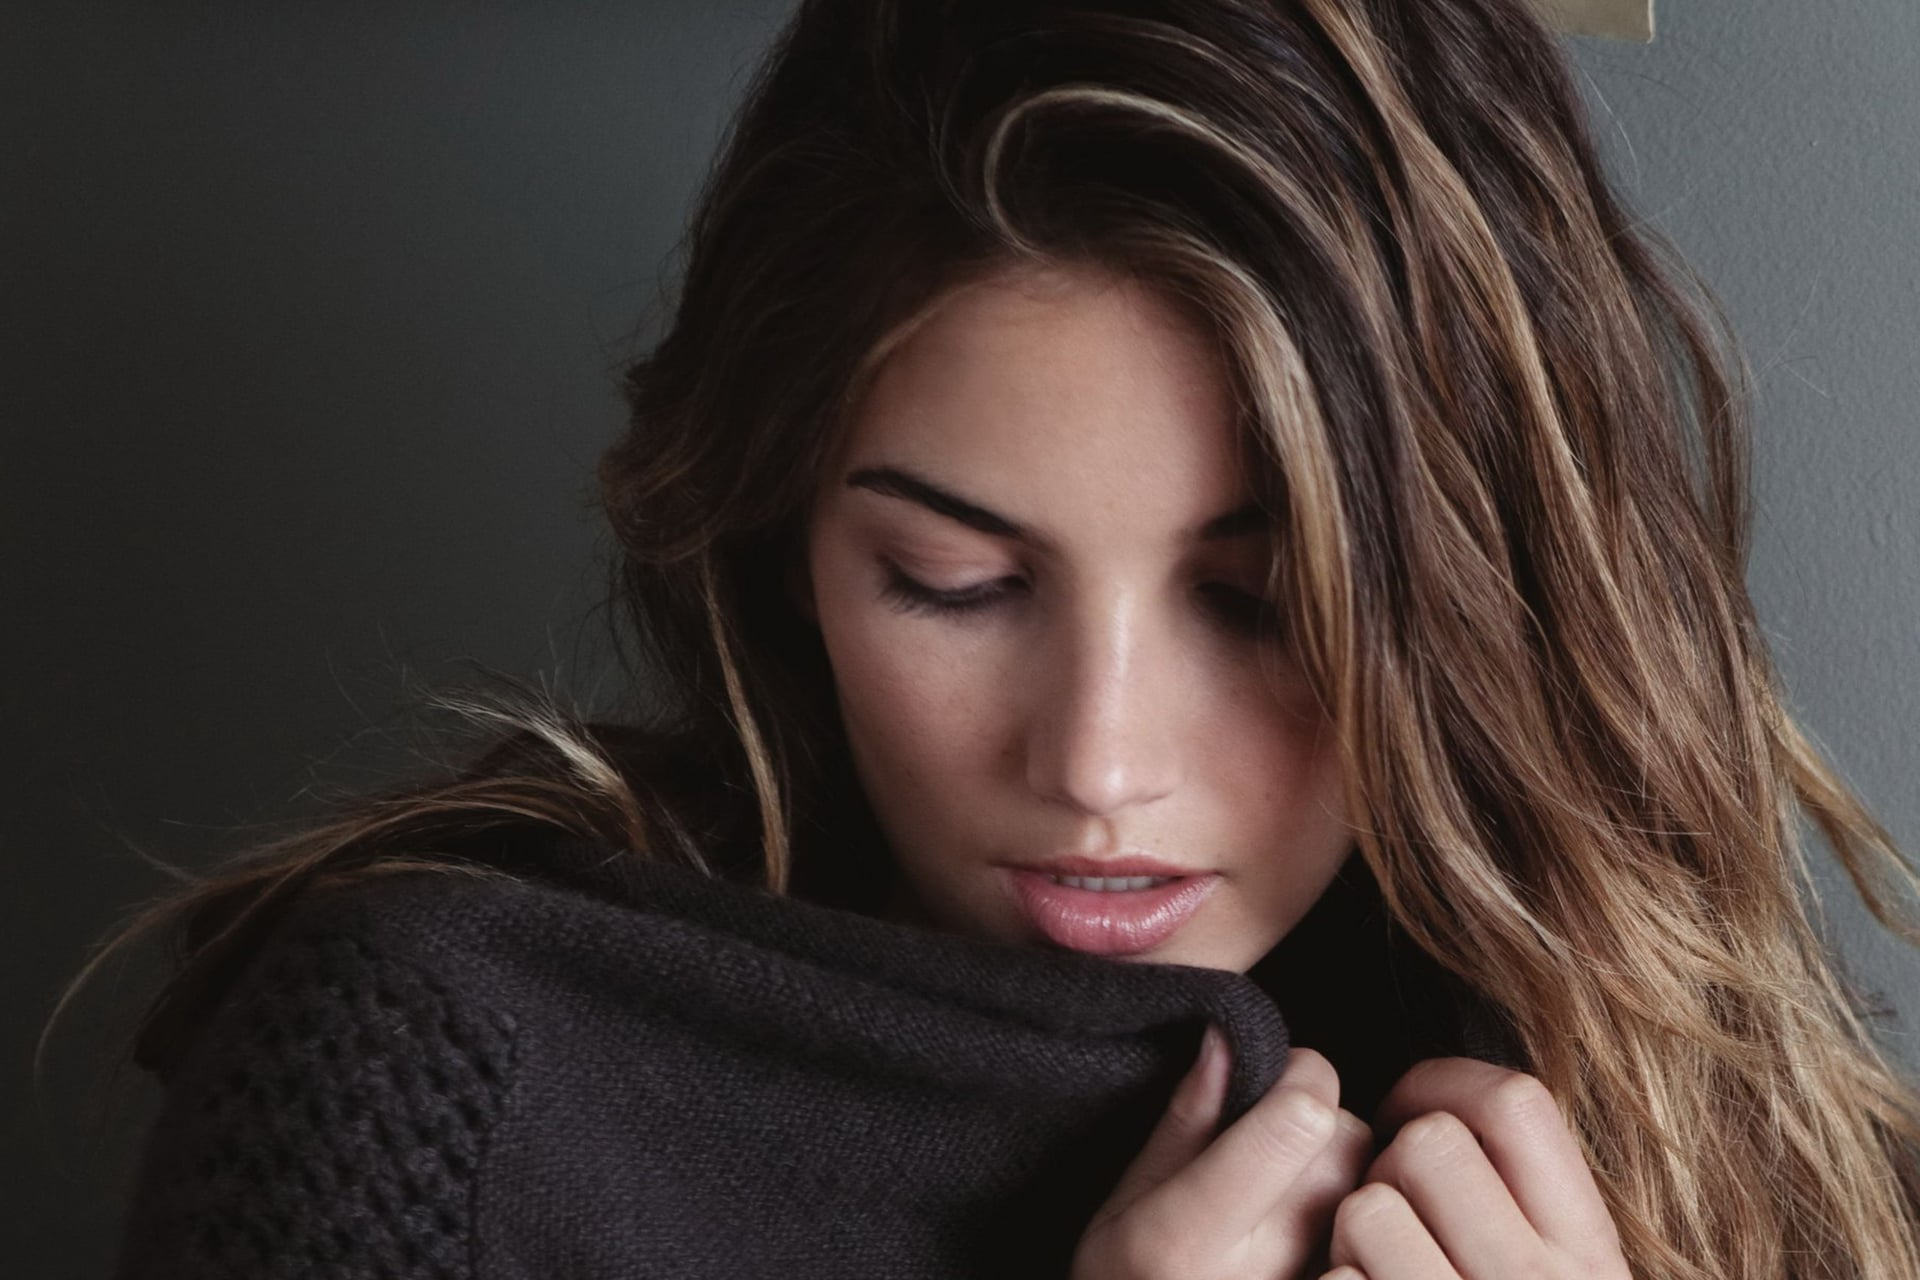 Cool Lily Aldridge HD pic for PC